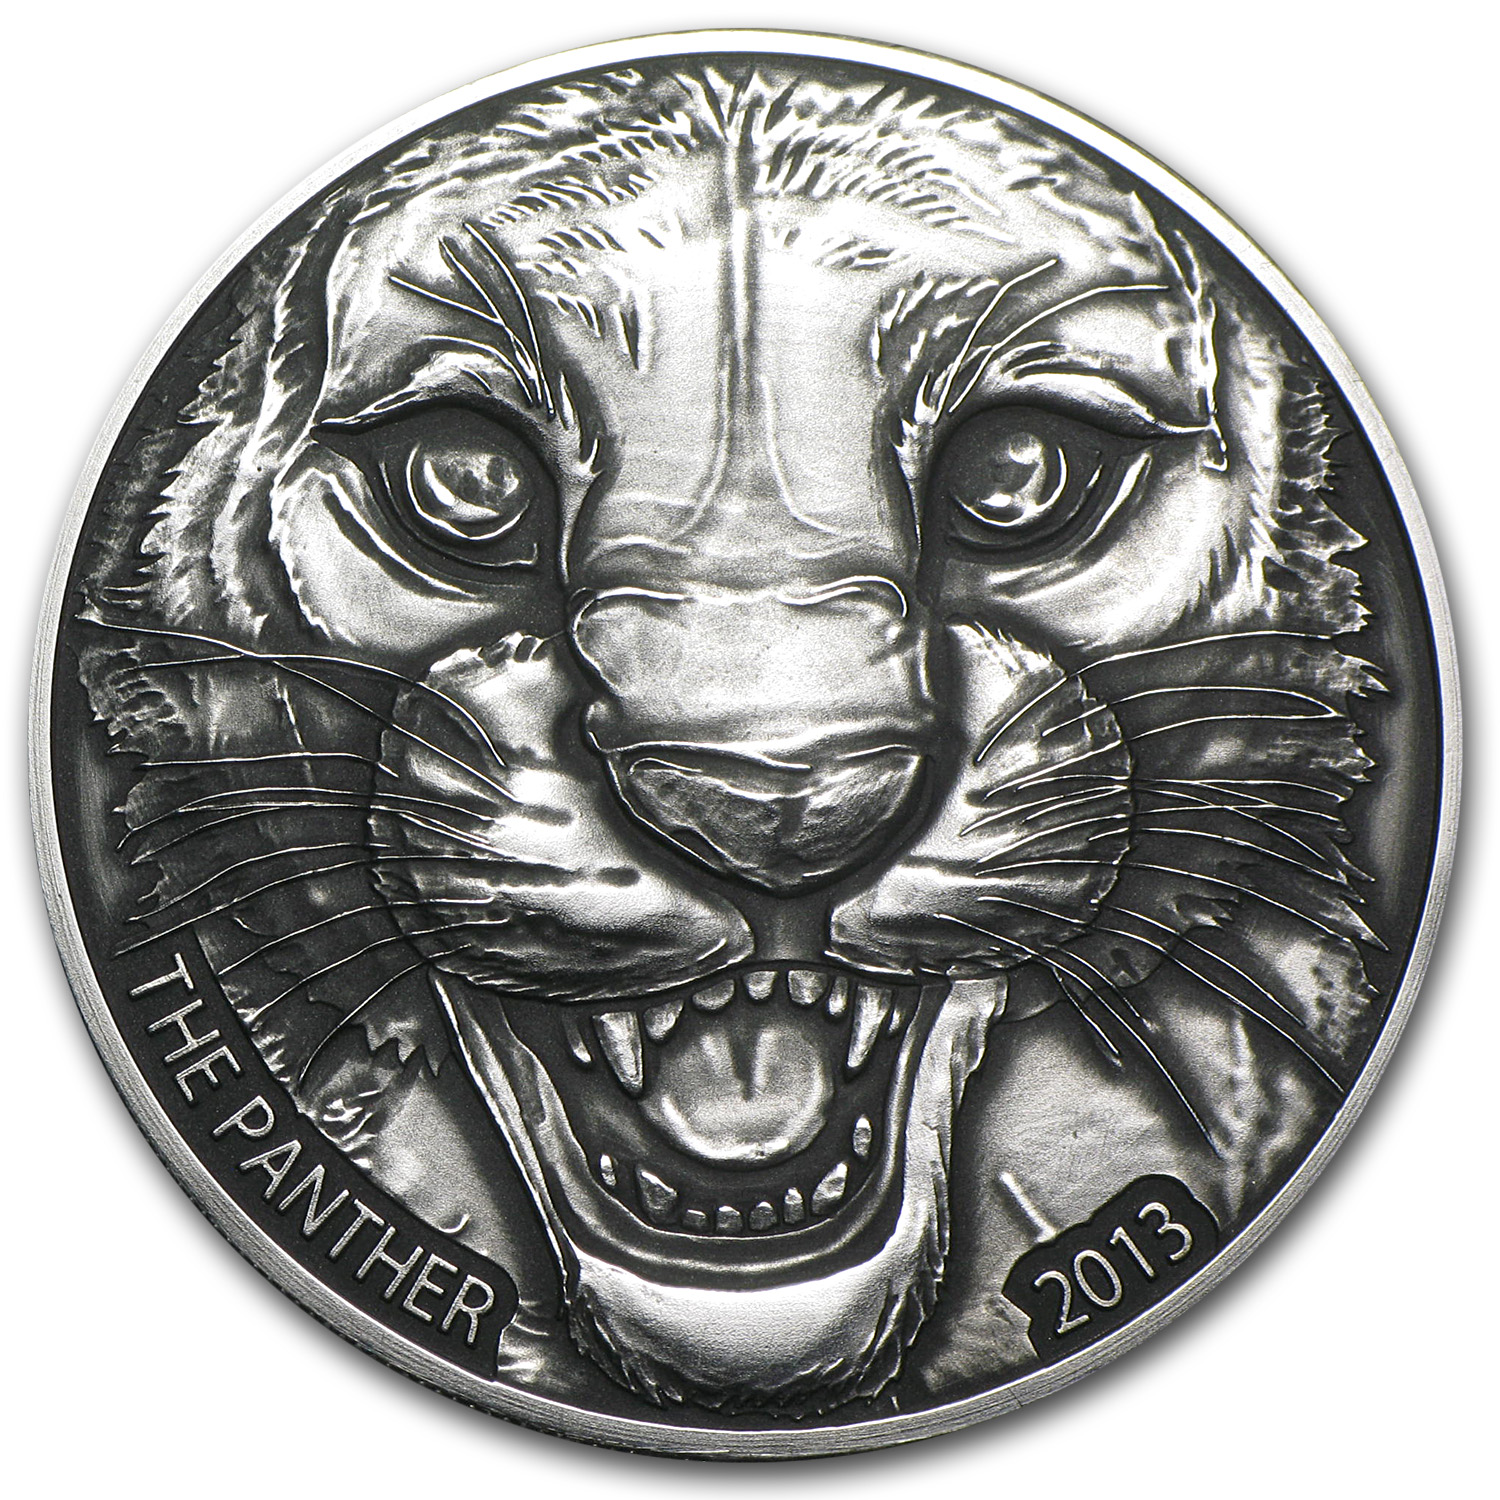 2013 Ivory Coast 1 oz Silver Black Panther